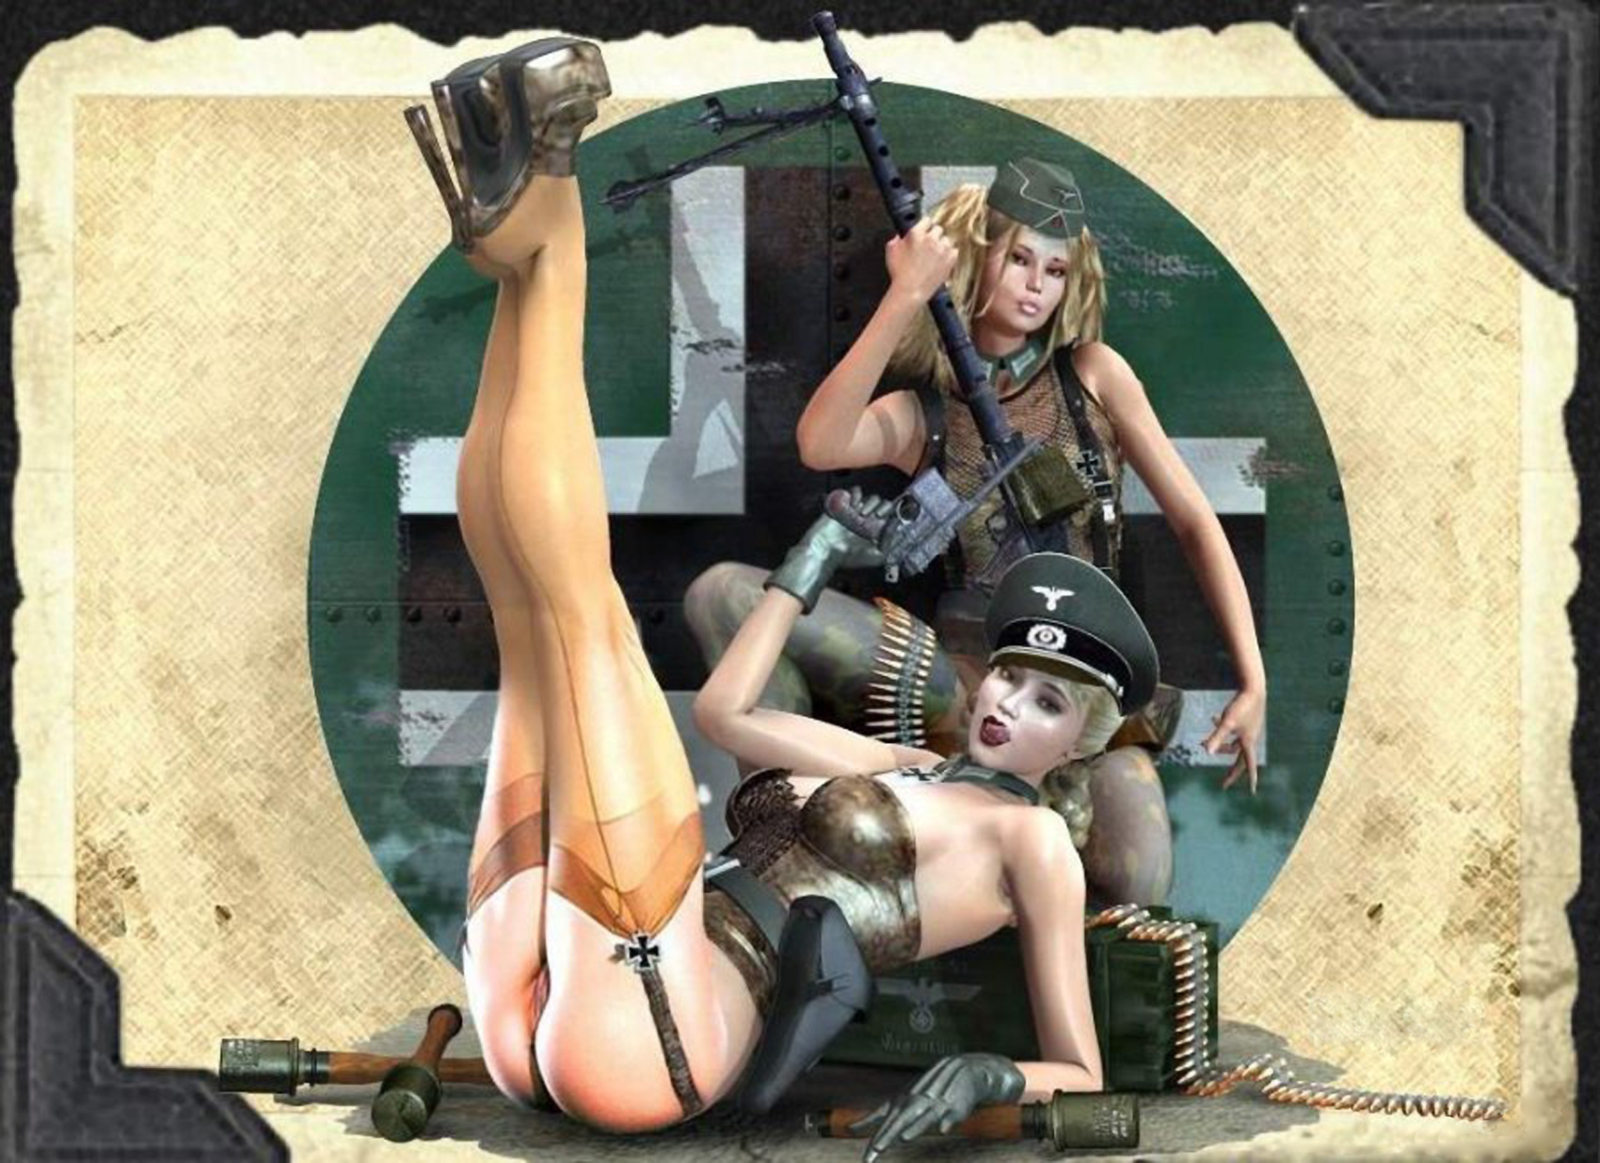 3d cartoon girl soldier erotic pics nackt image